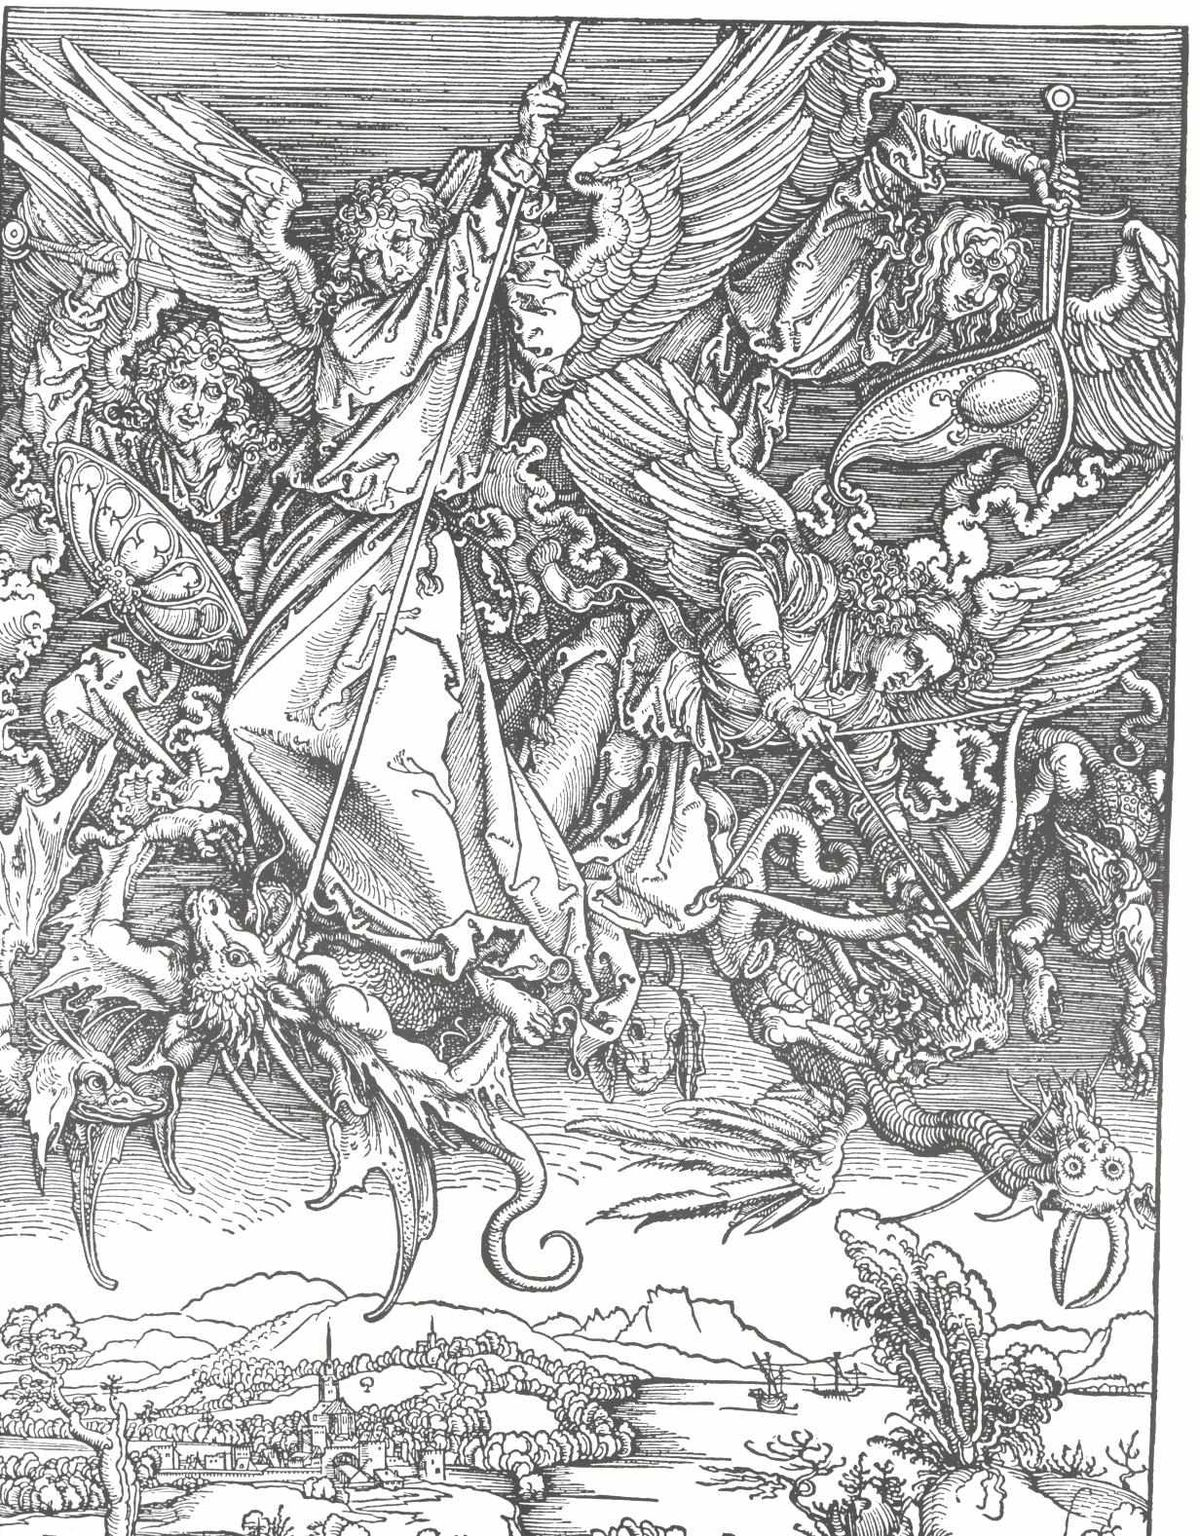 Saint michael fighting the dragon wikipedia for Battle between heaven and hell tattoo